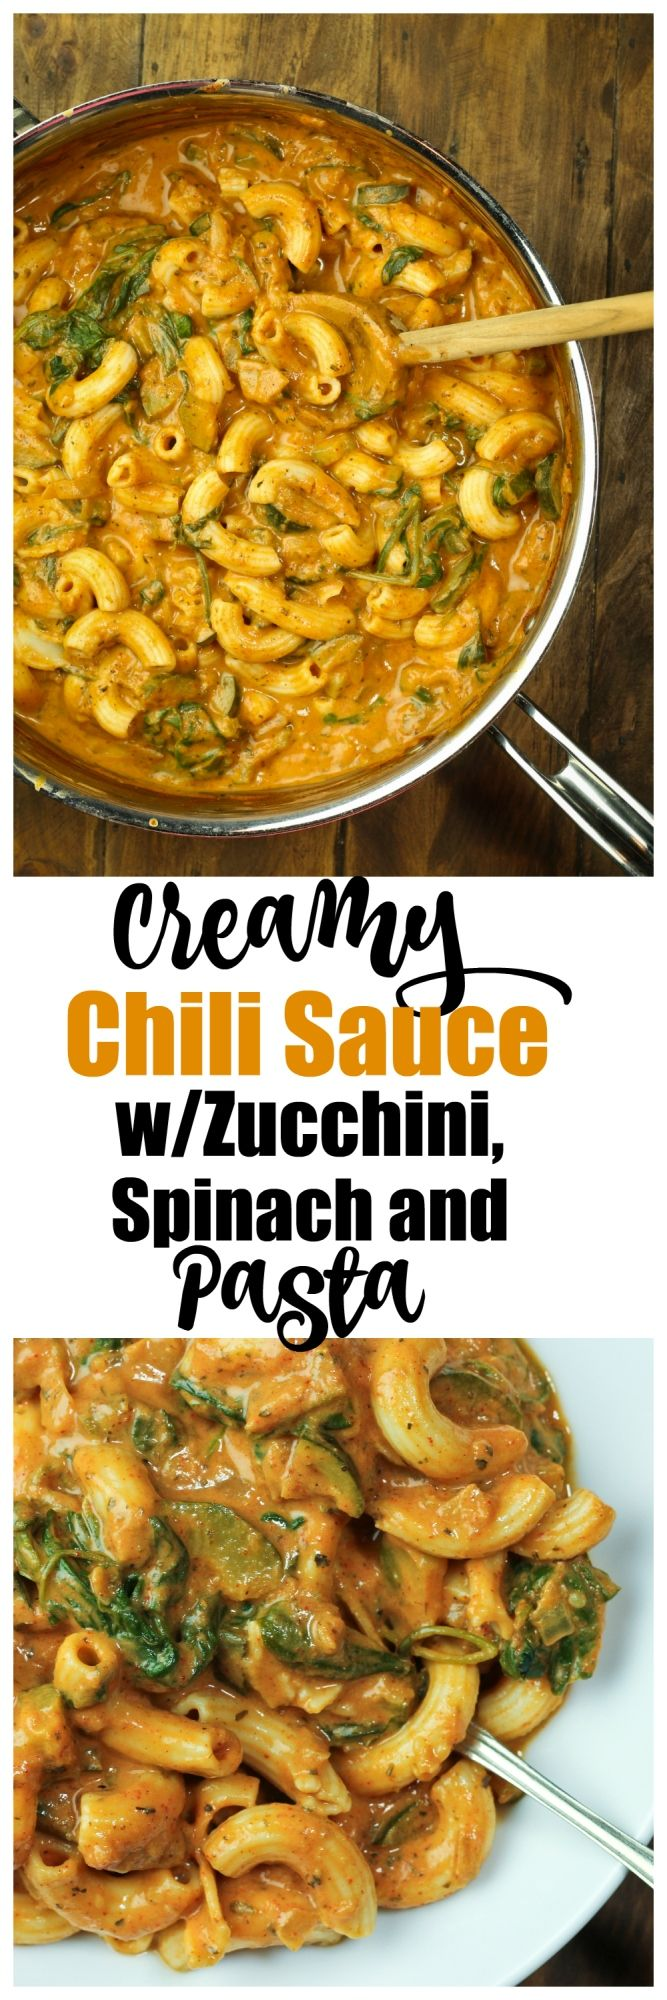 Creamy Chili Sauce with Zucchini, Spinach and Pasta. So creamy, rich and yet light with no oil or butter. Just whole food ingredients. So much flavor from Italian dried herbs and chili powder and tomato sauce. So good, you will become addicted. Just 8 ingredients! #vegan #dairyfree #oilfree #pasta #creamy #zucchini #spinach #sauce via @thevegan8